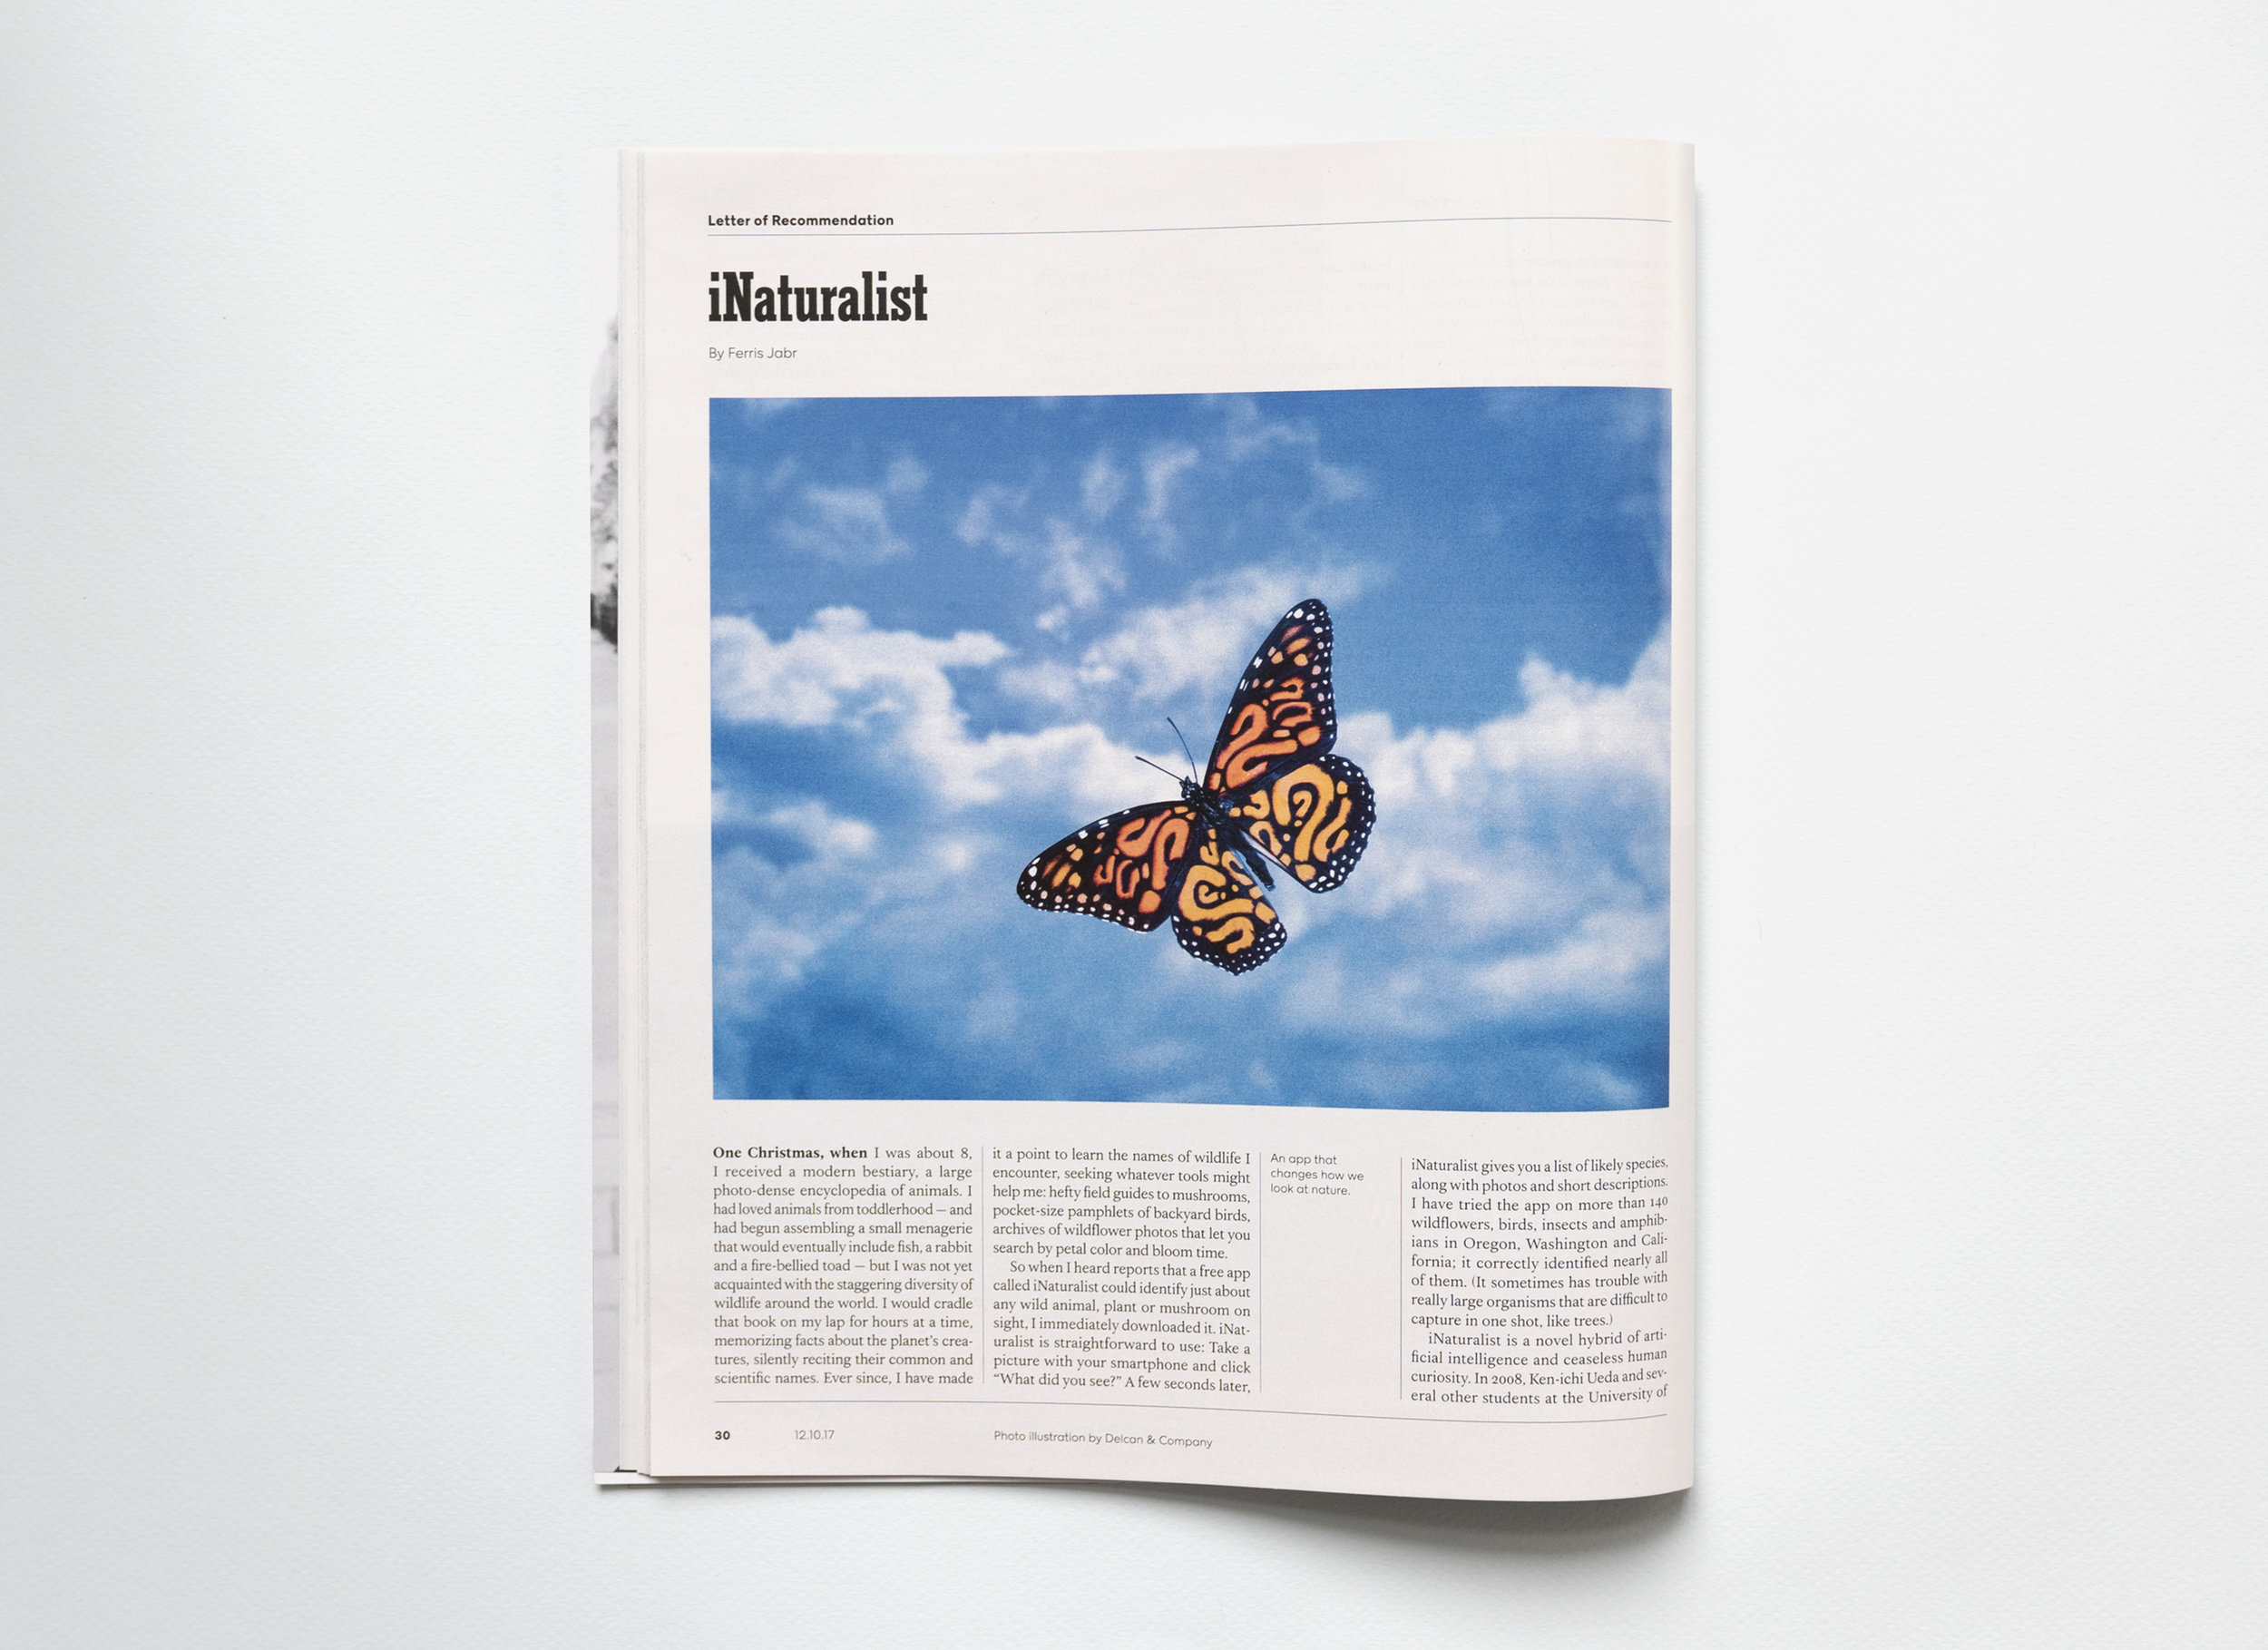 iNaturalist. Letter of Recommendation. The New York Times Magazine.